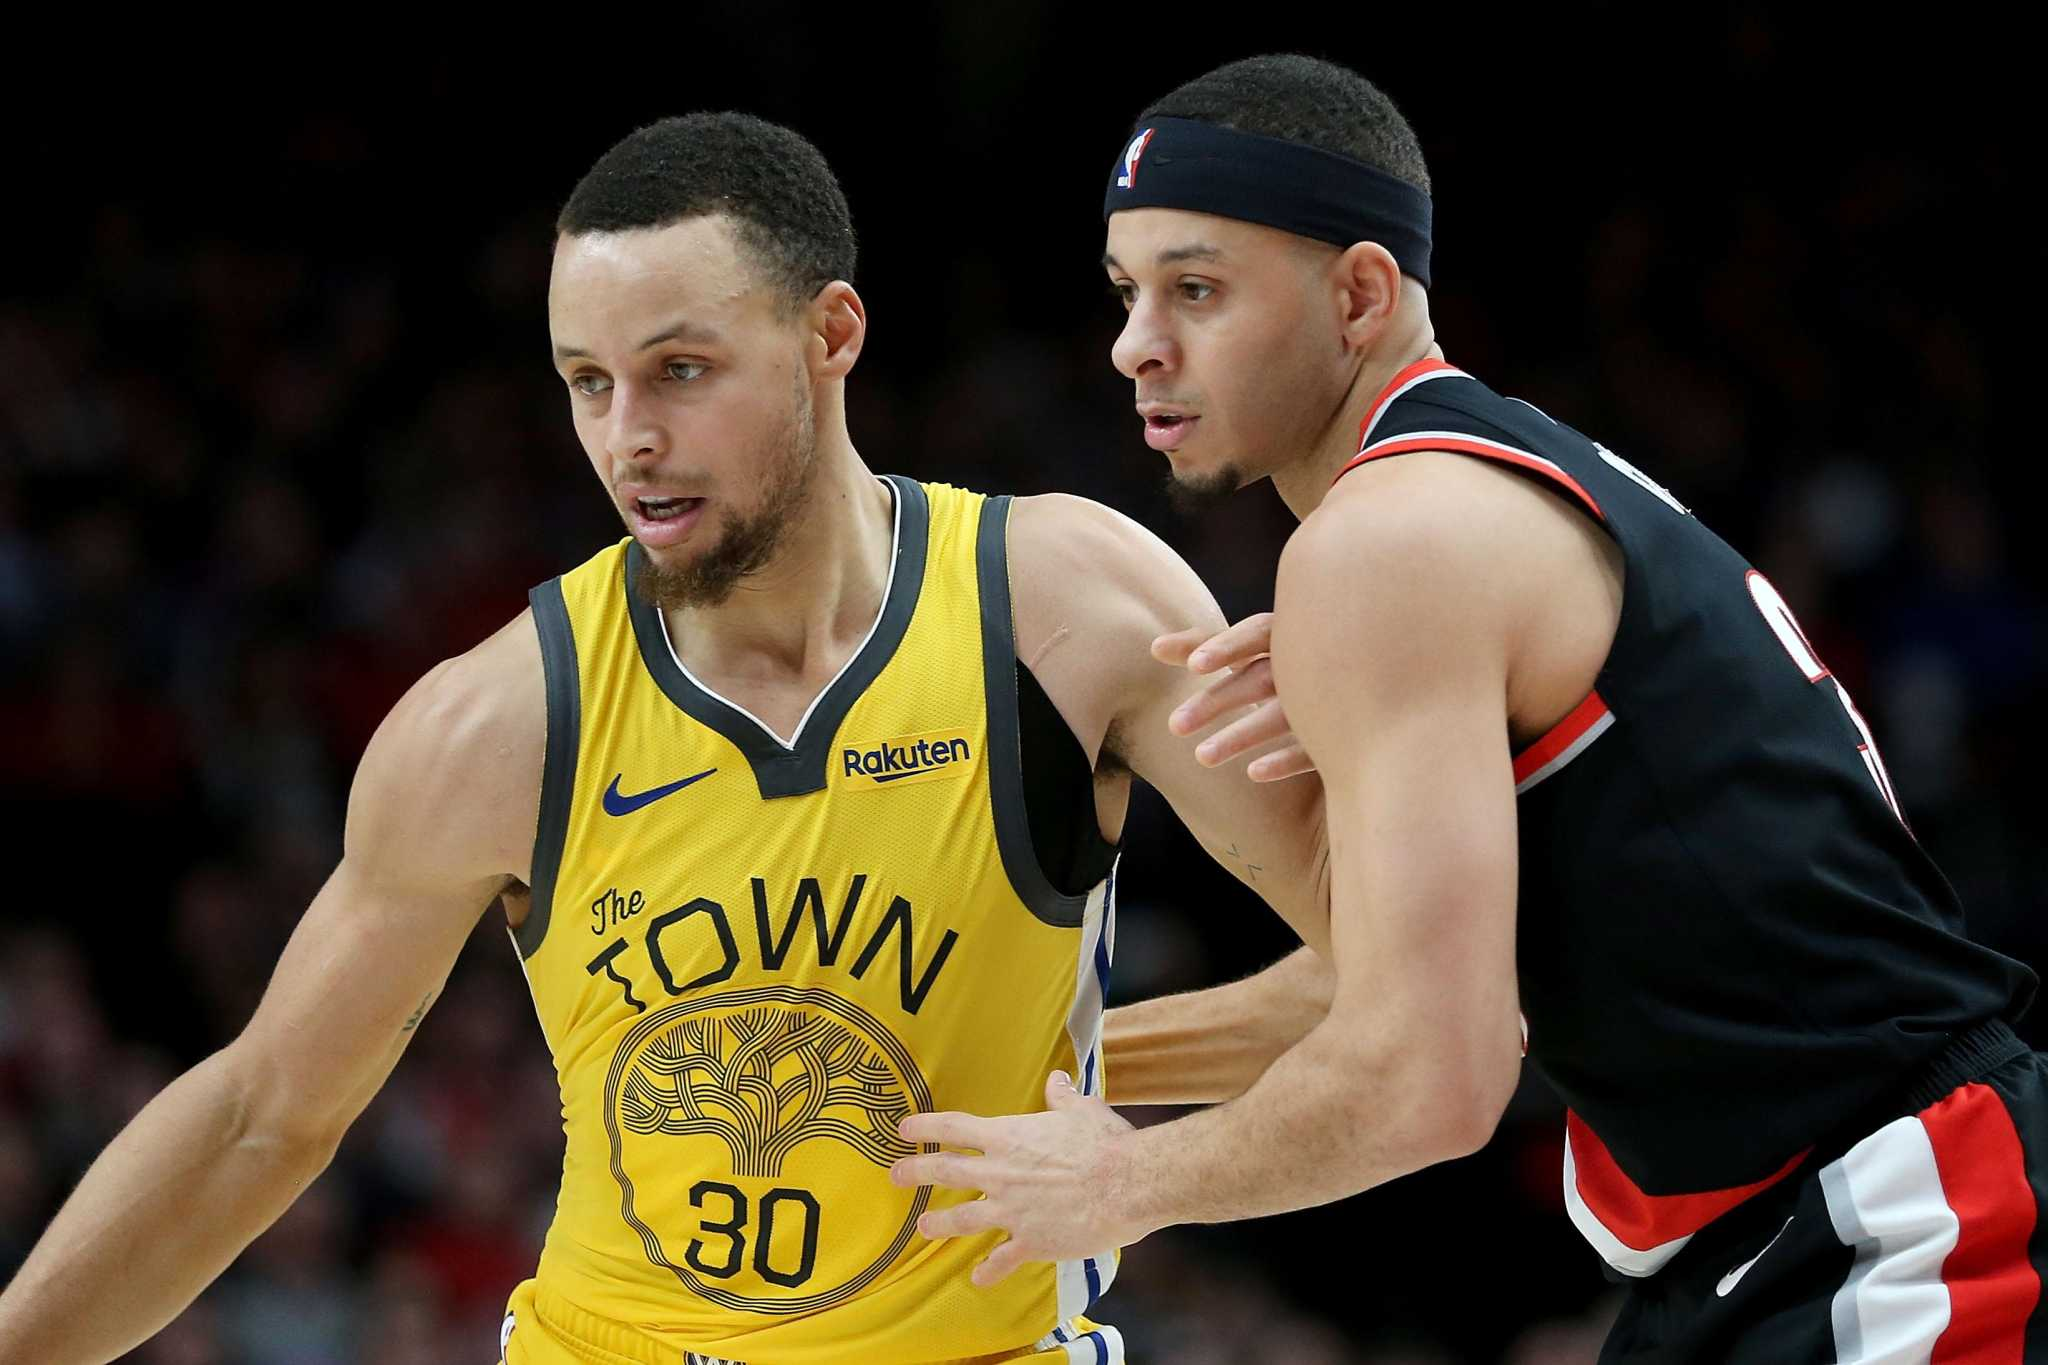 21a09c651 Stephen and Seth Curry  From kids playing Nerf hoops to NBA sharpshooters -  SFChronicle.com